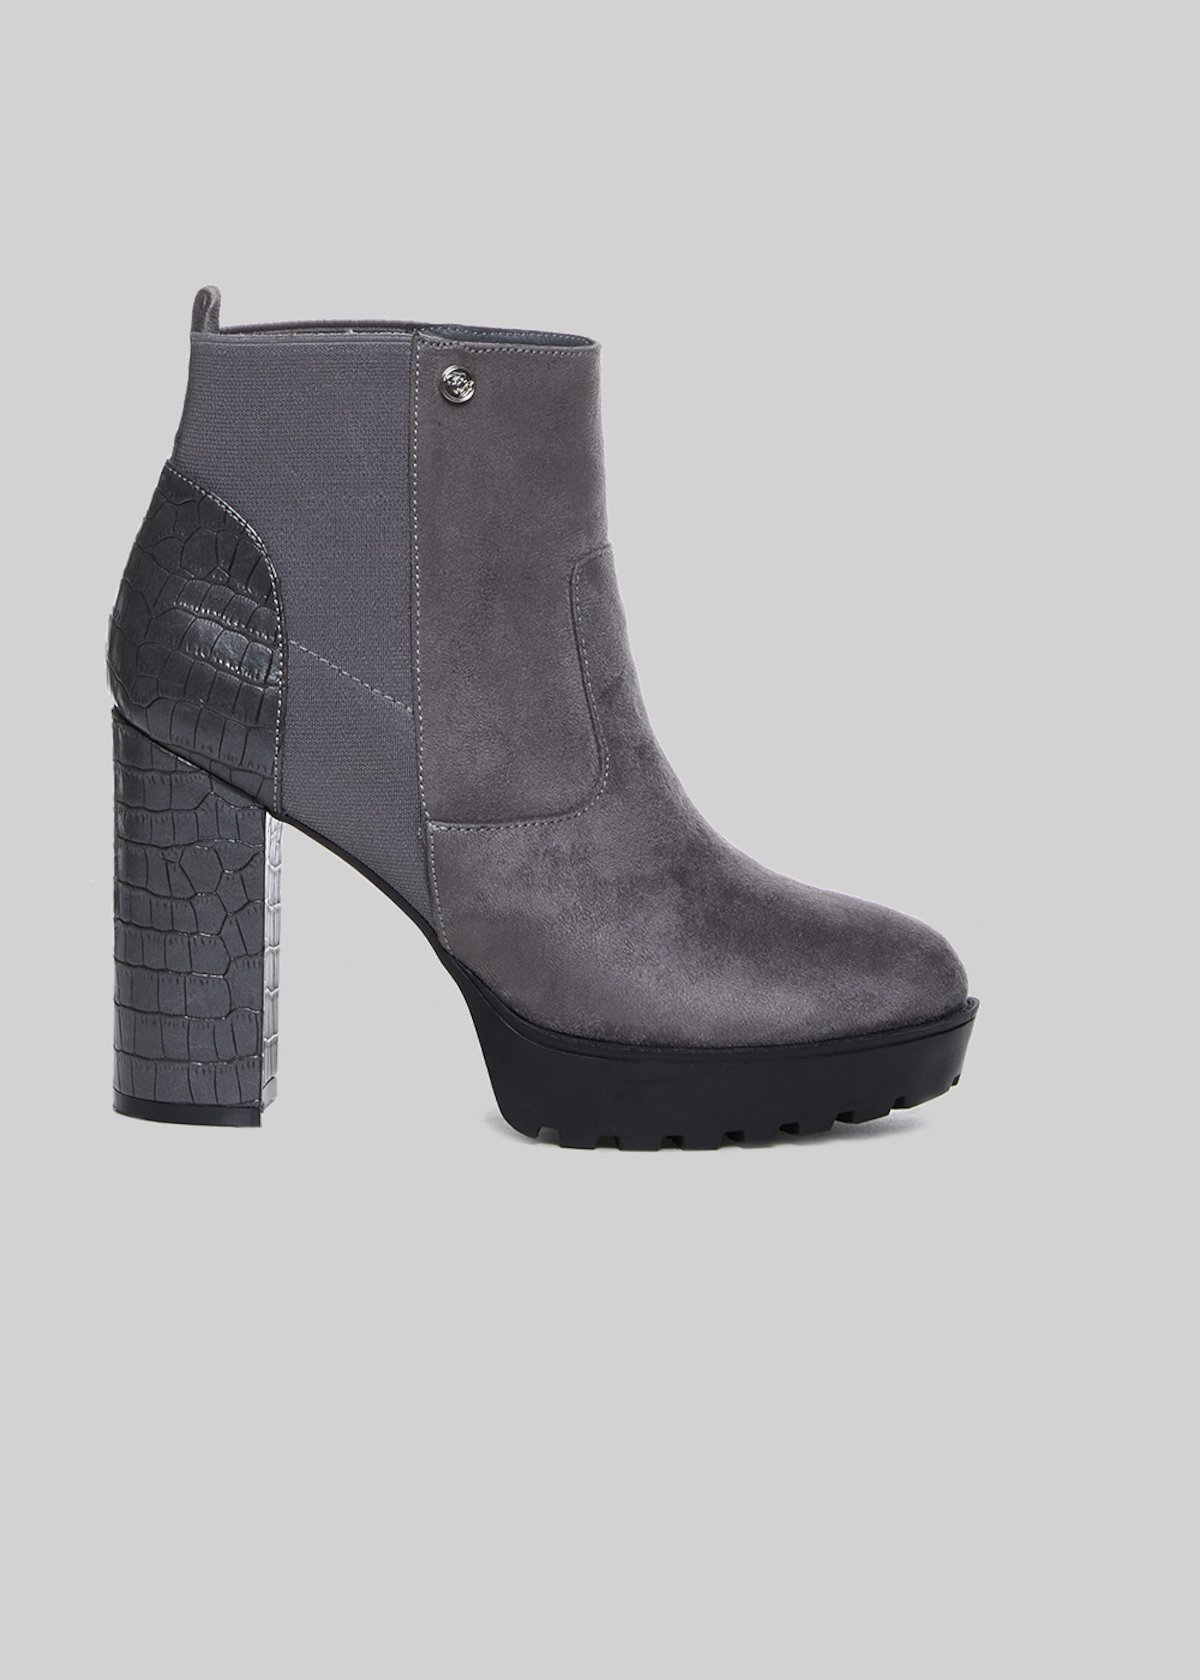 Suamy boots in eco-suede with python print heel